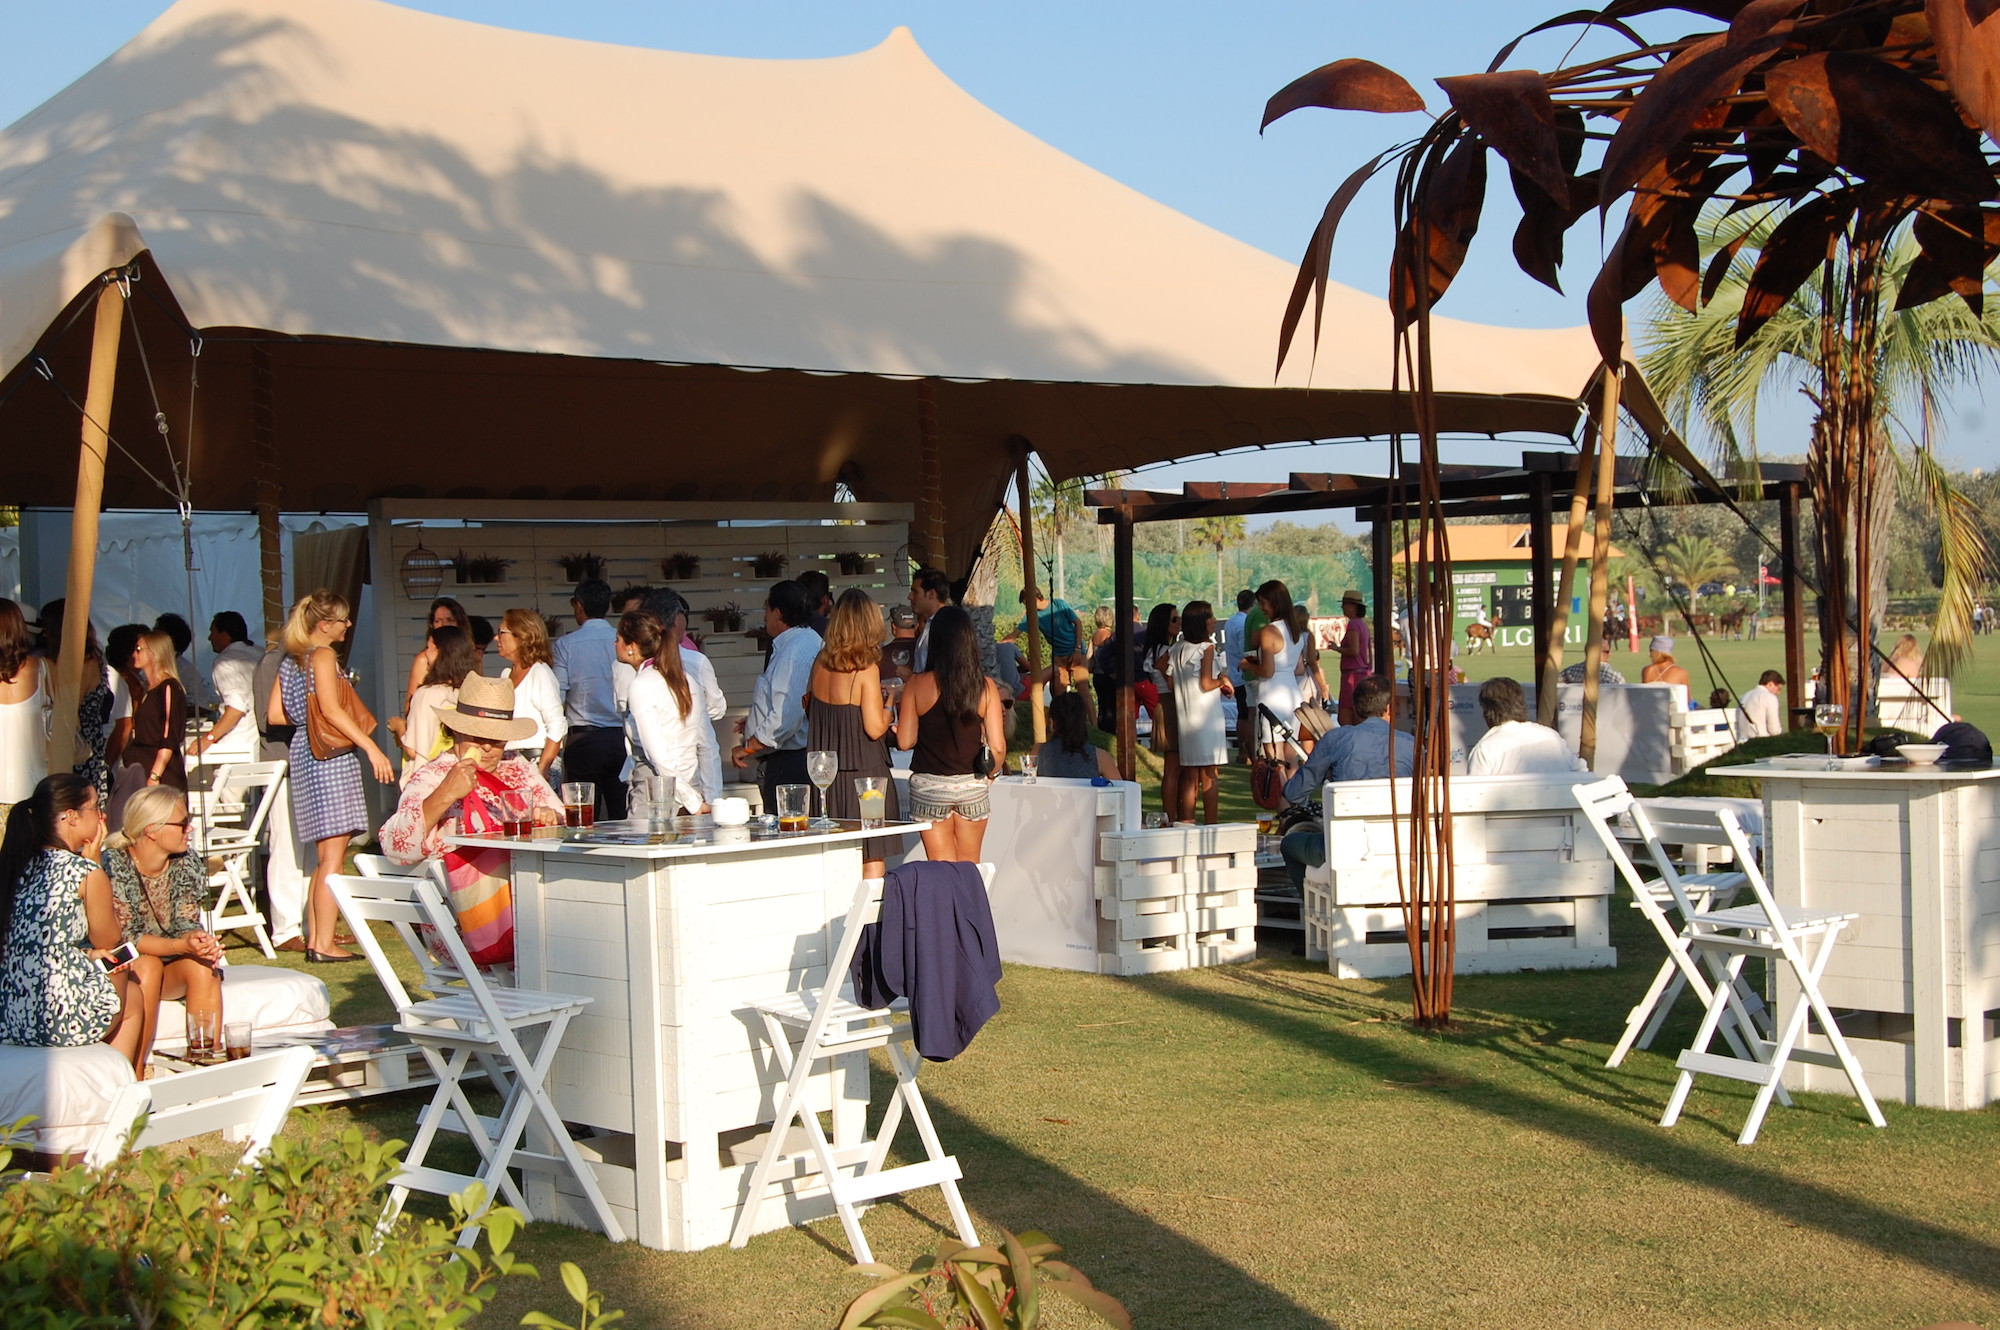 Pitchside dining at Santa Maria Polo Club's International Tournament